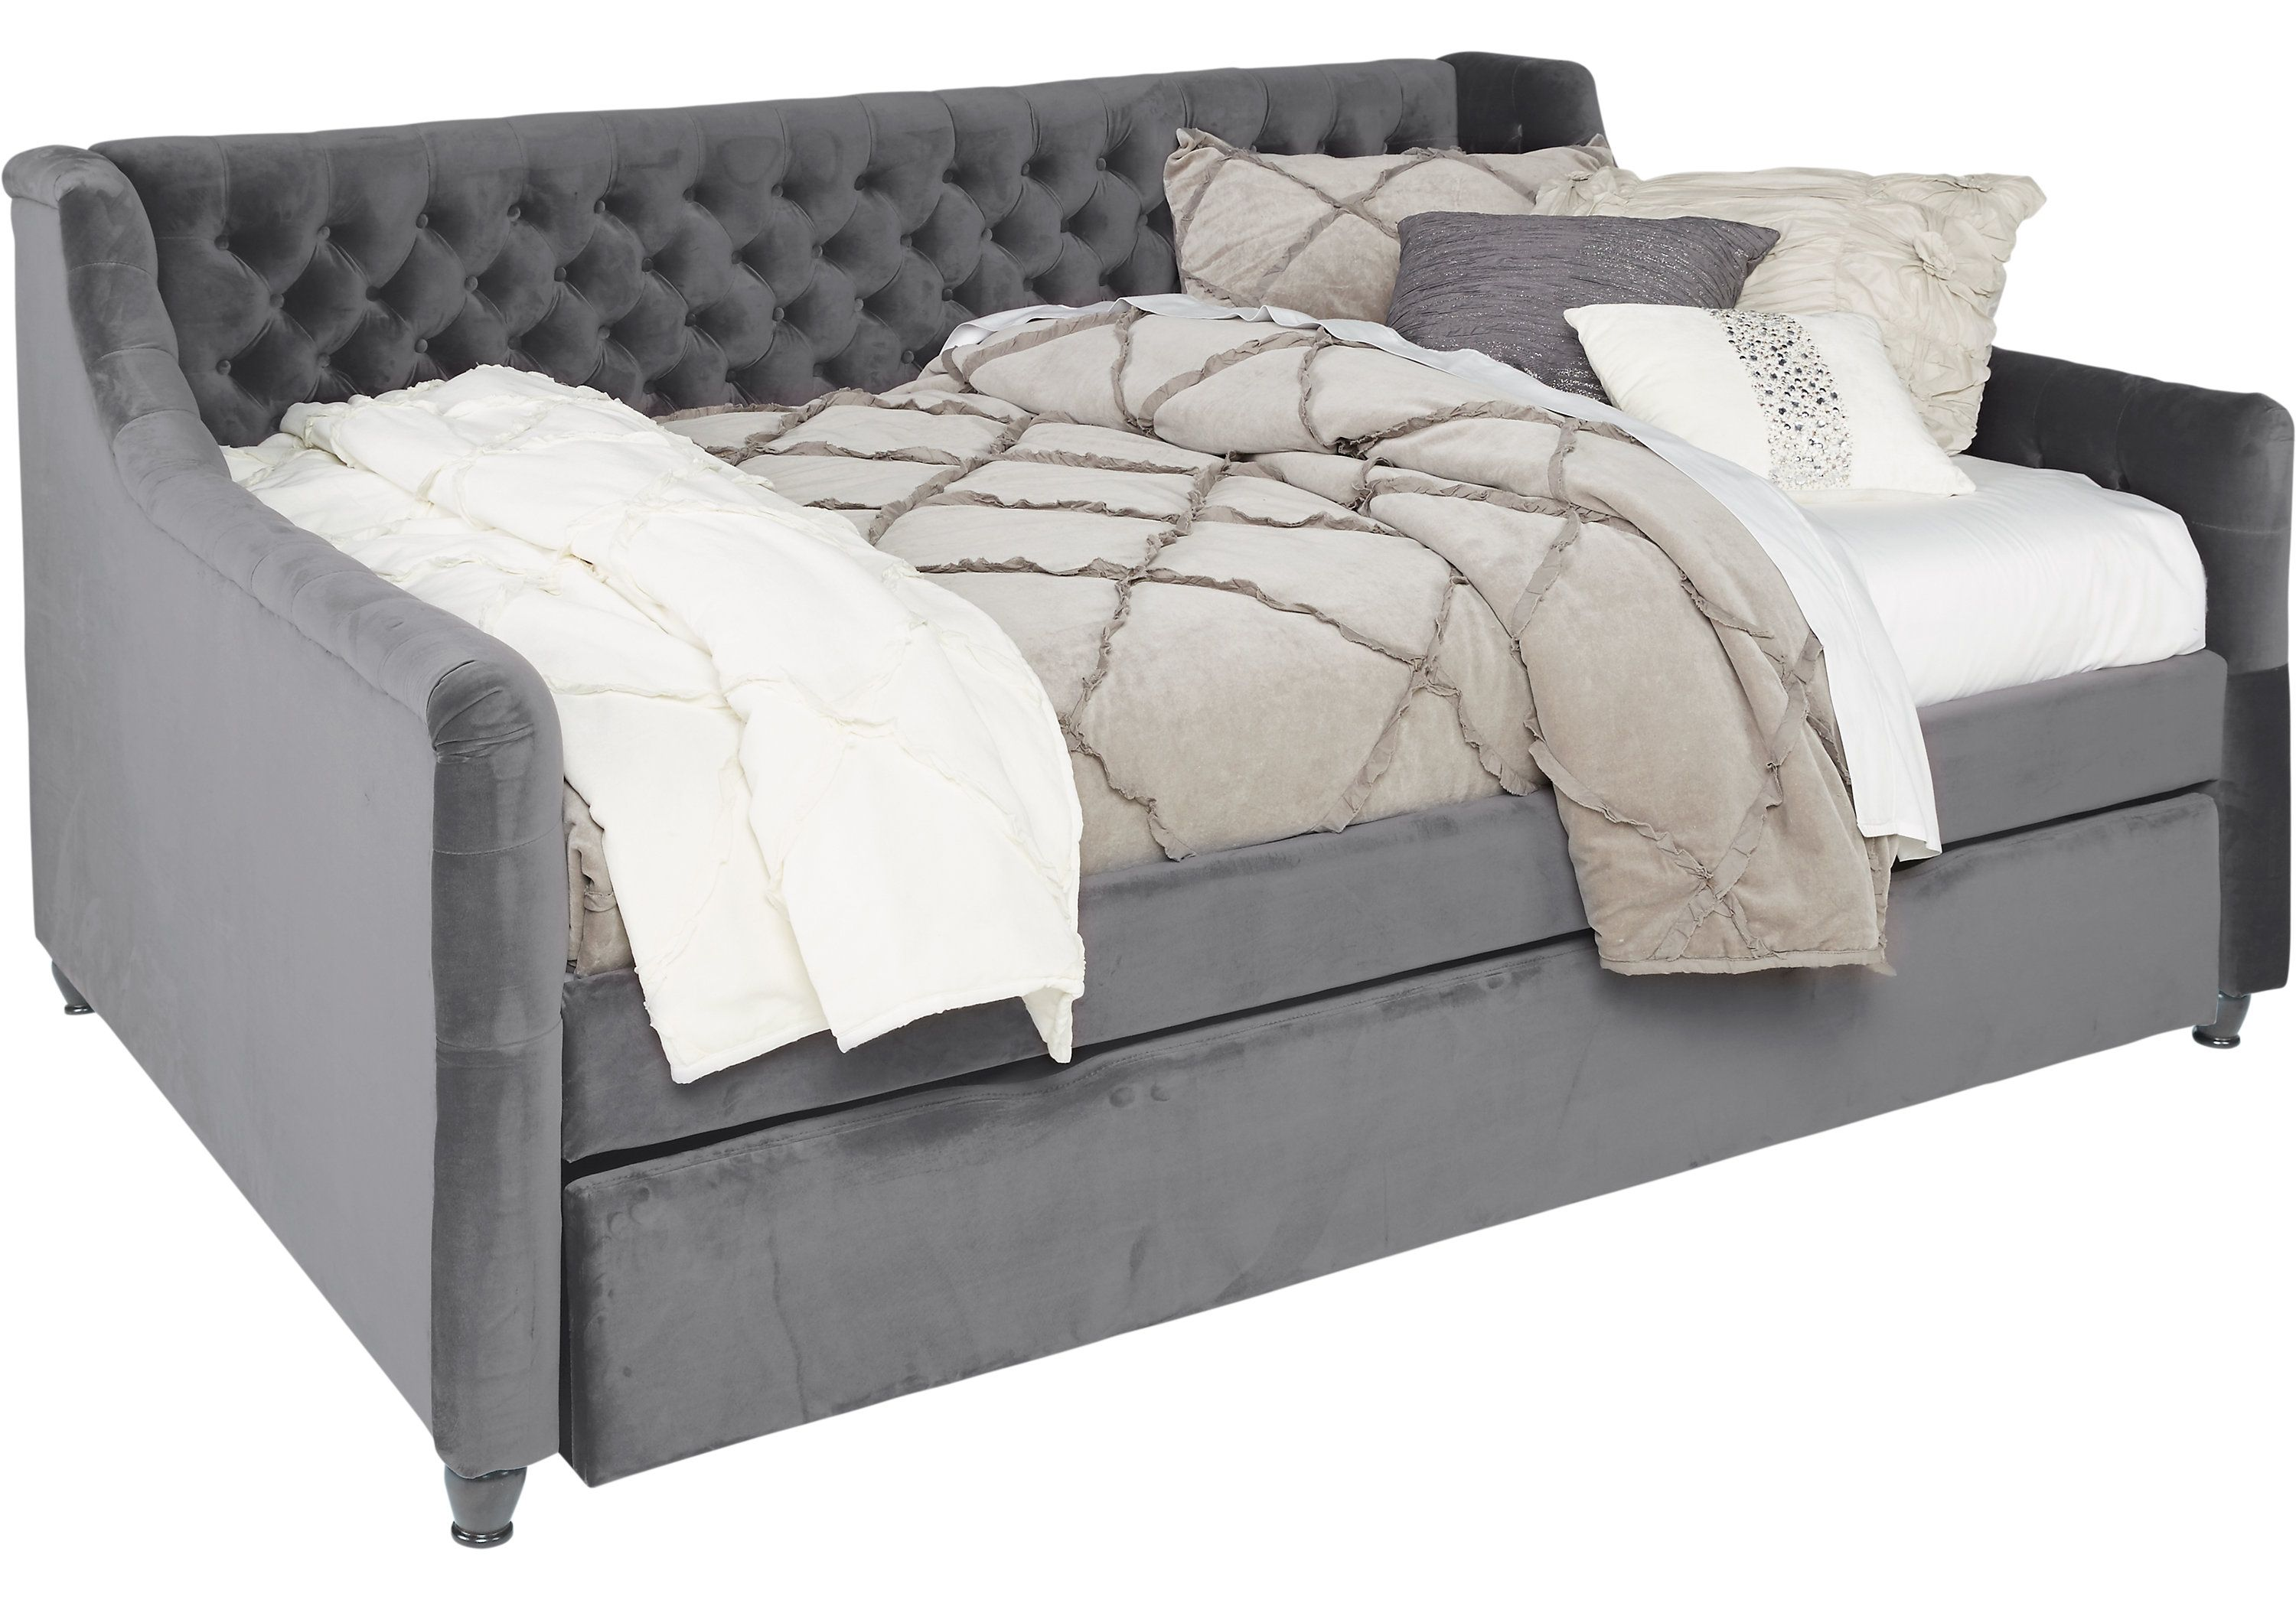 Daybed with trundle full size alena charcoal  pc full daybed with trundle  mira monster the